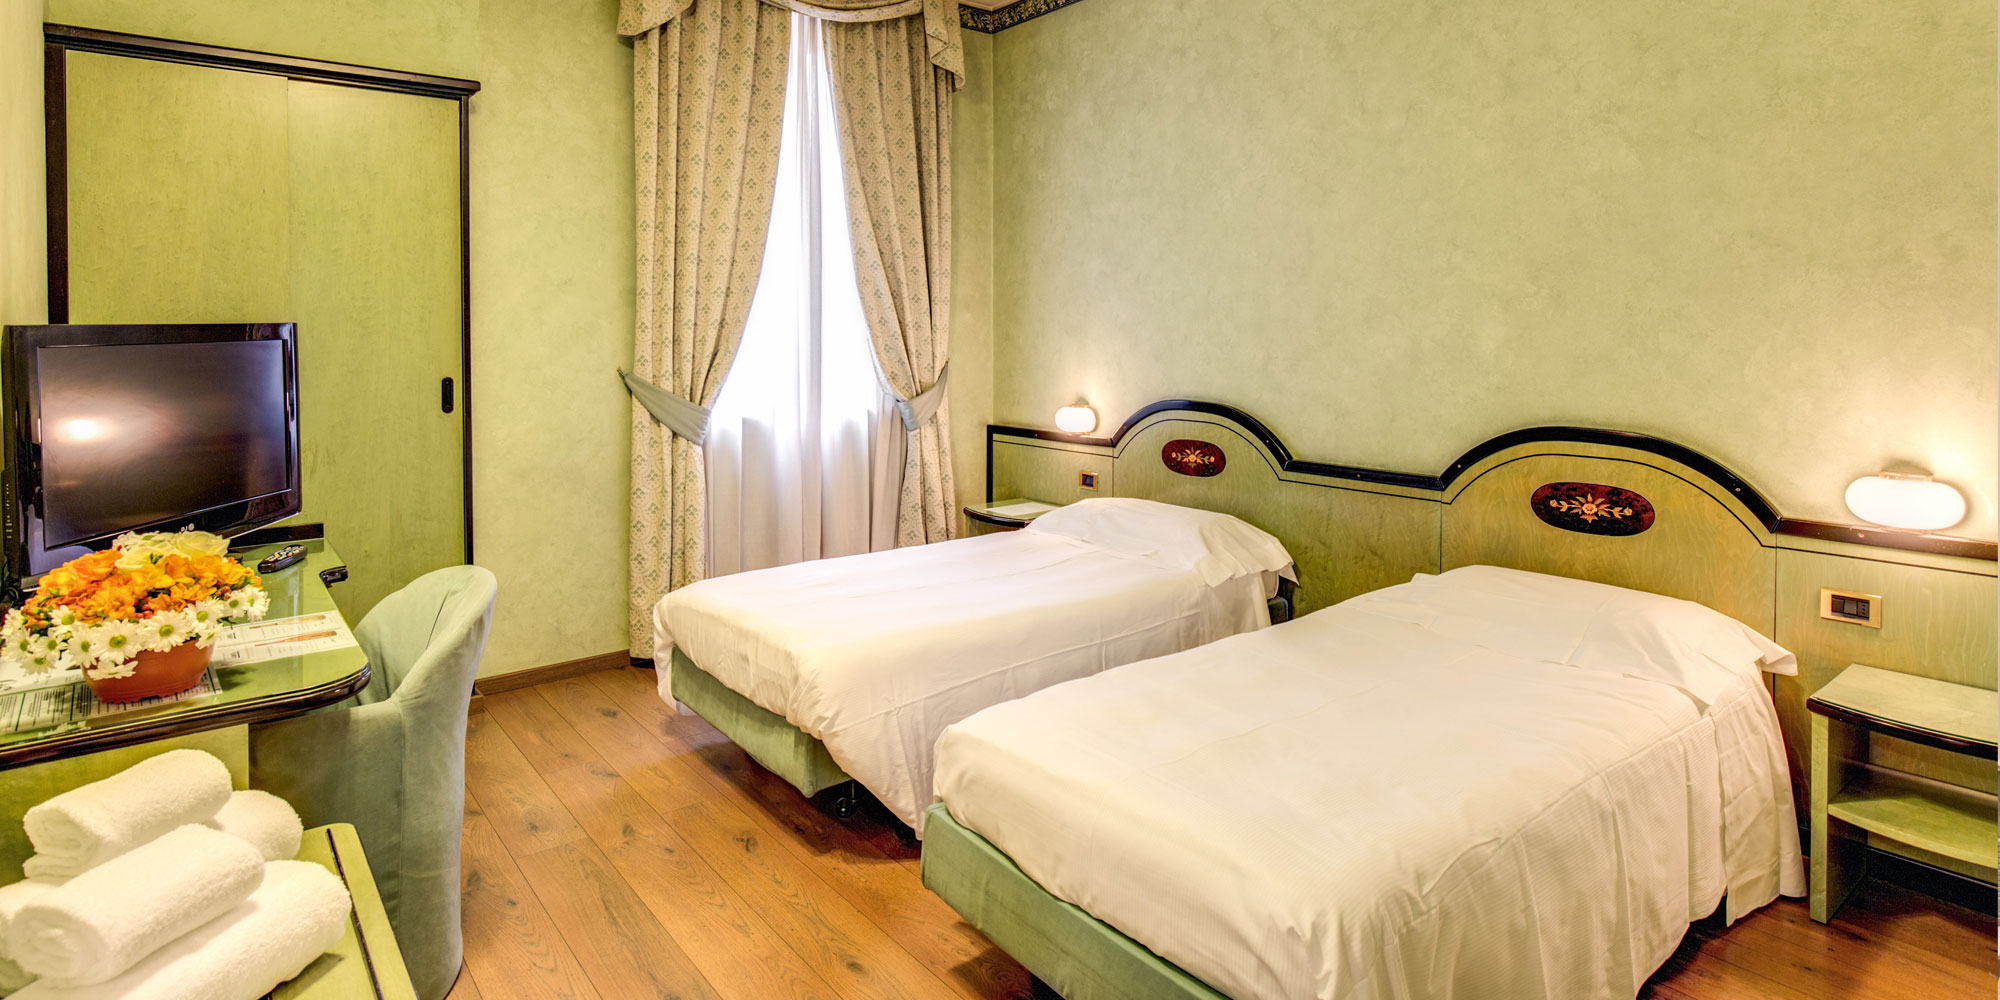 Hotel Puccini Milan - Rooms